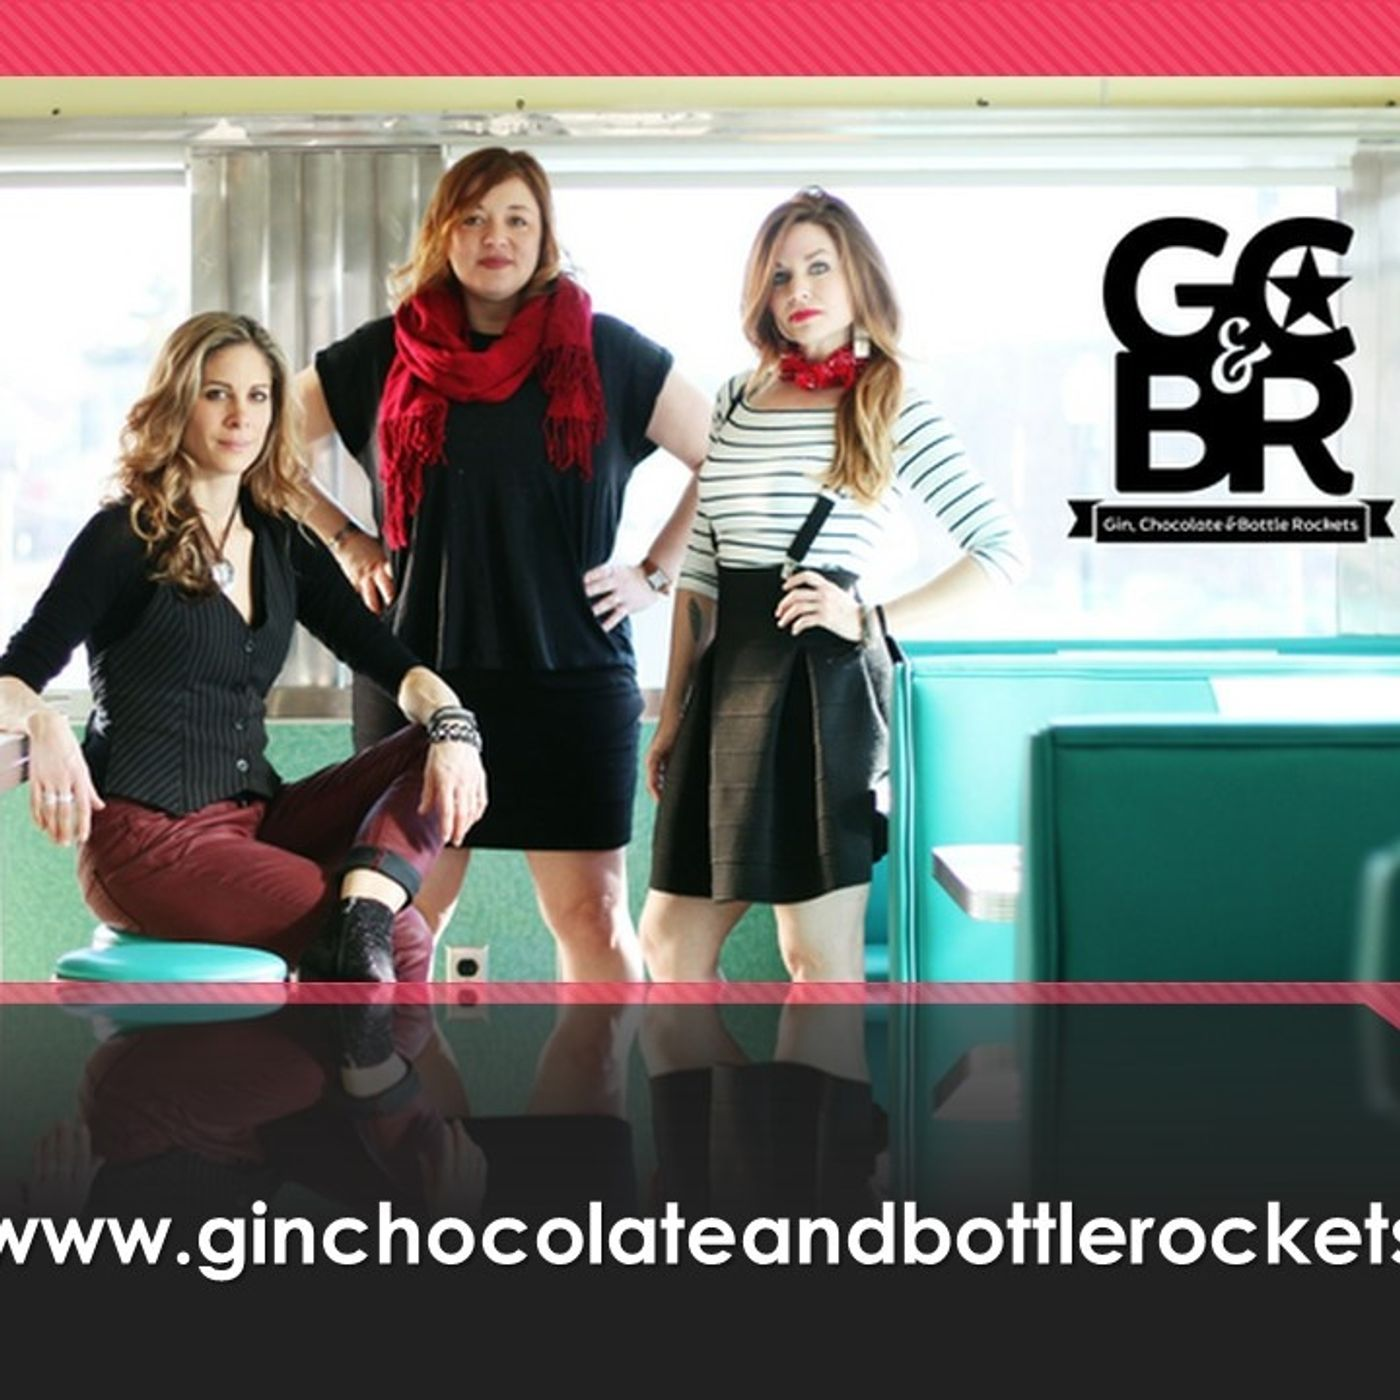 gin-chocolate-and-bottle-rockers-10_29_18